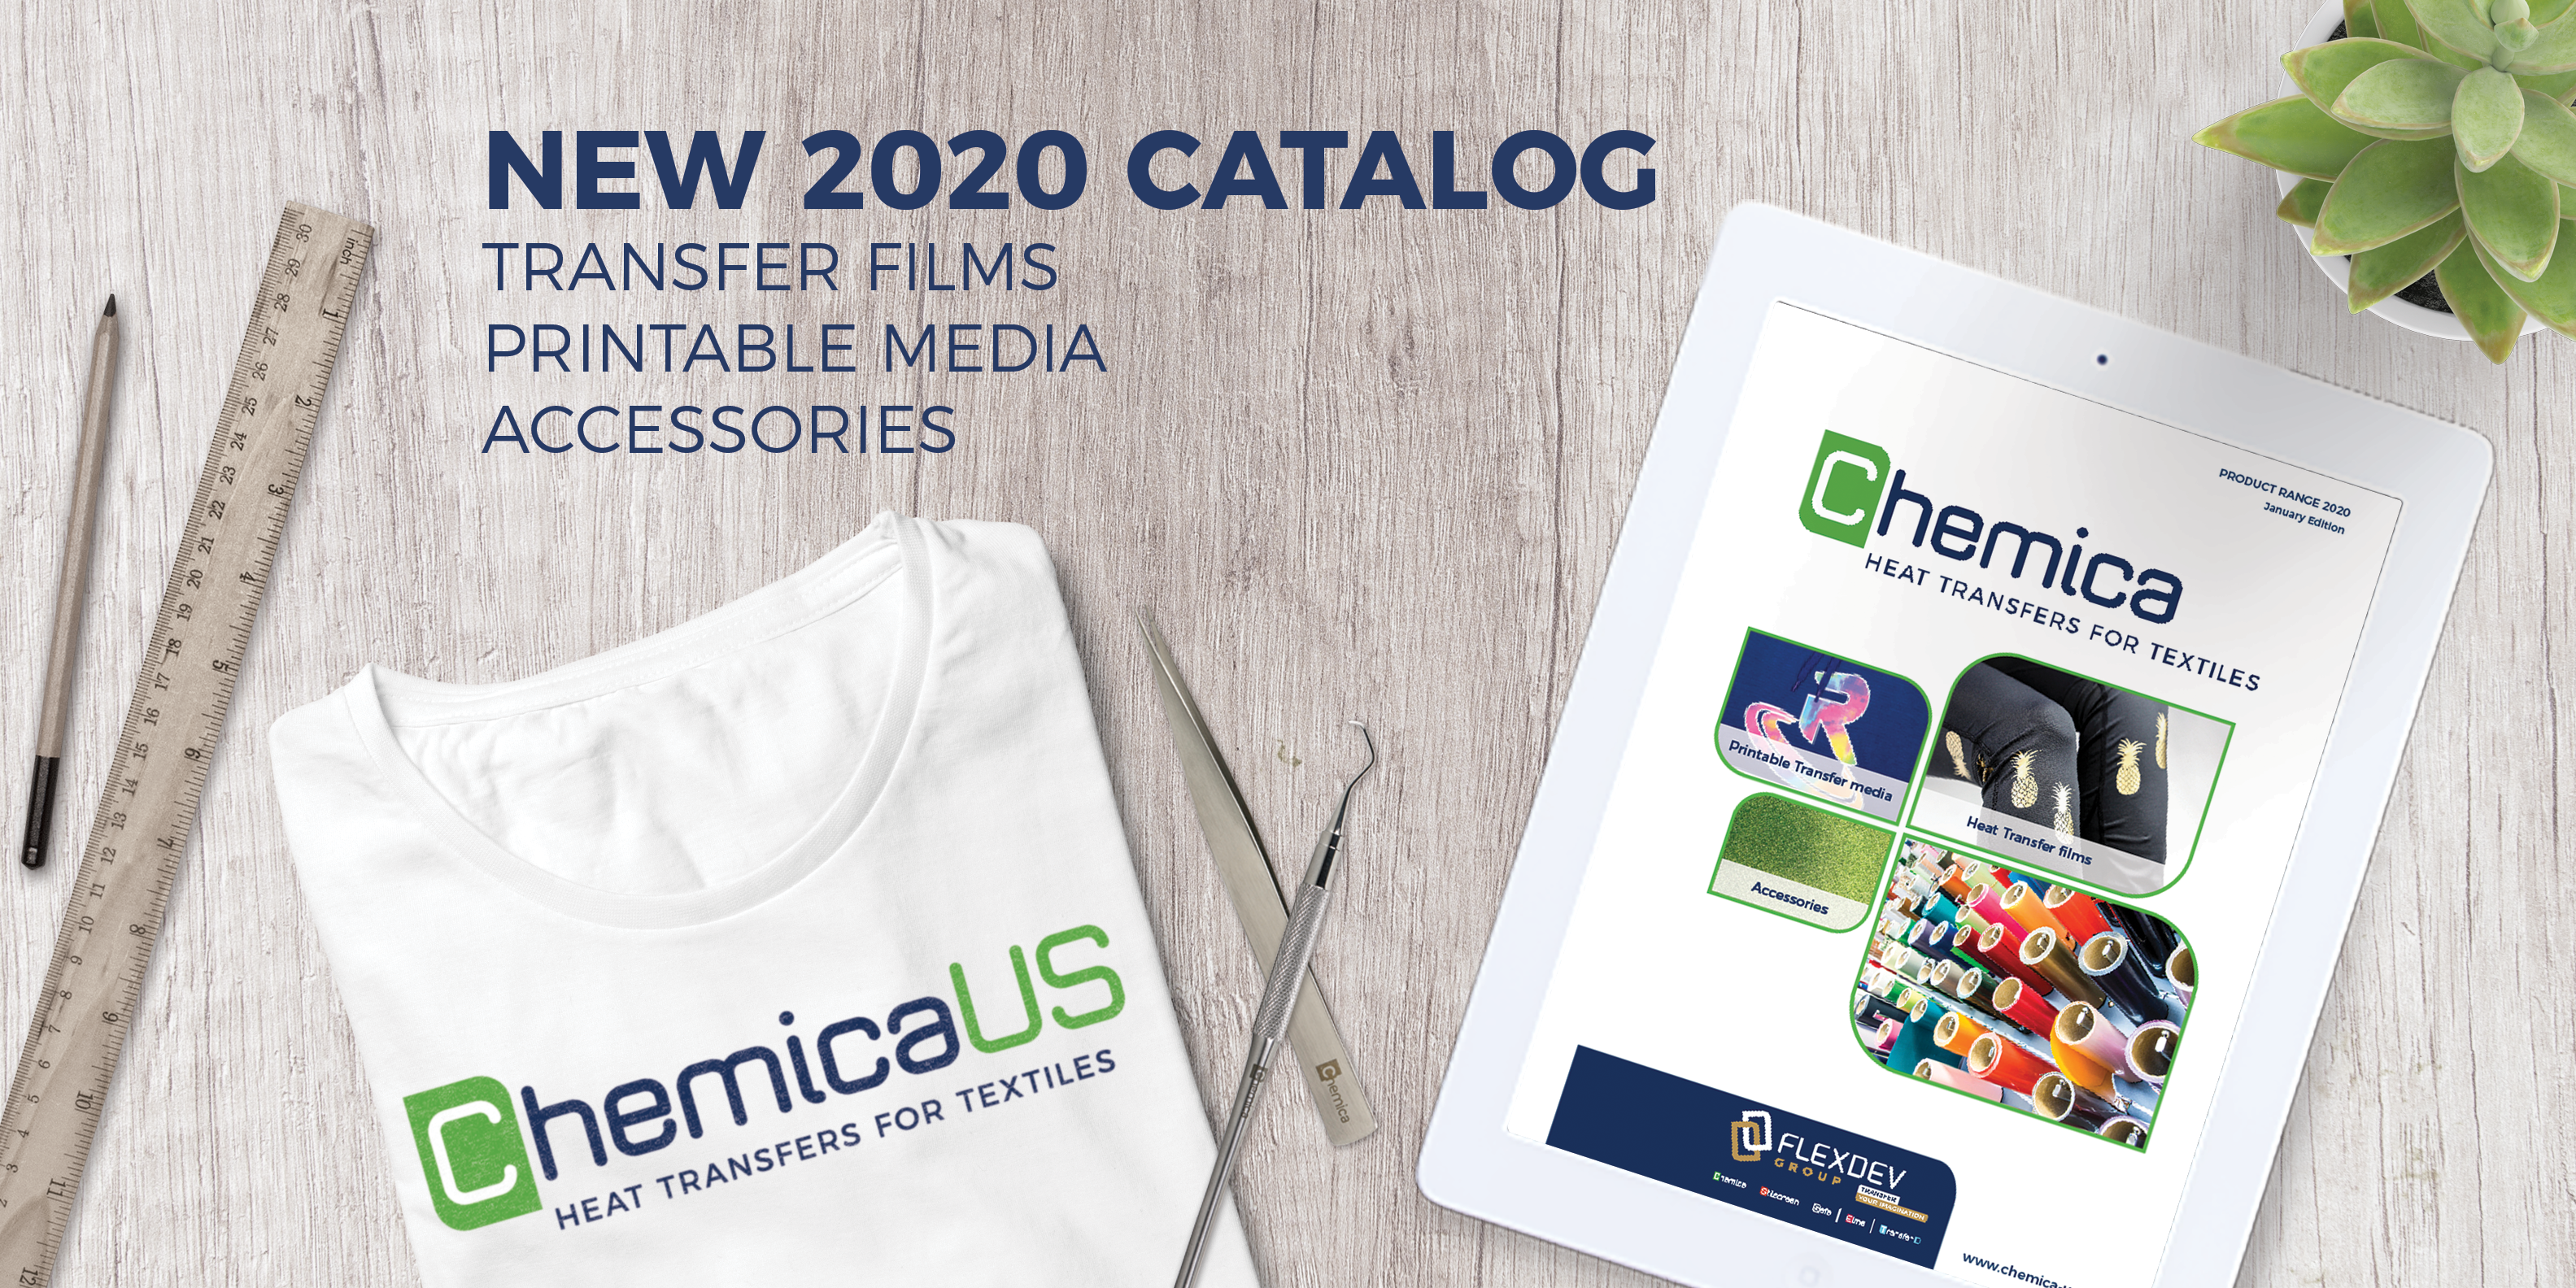 Our all new 2020 Catalog is now available!